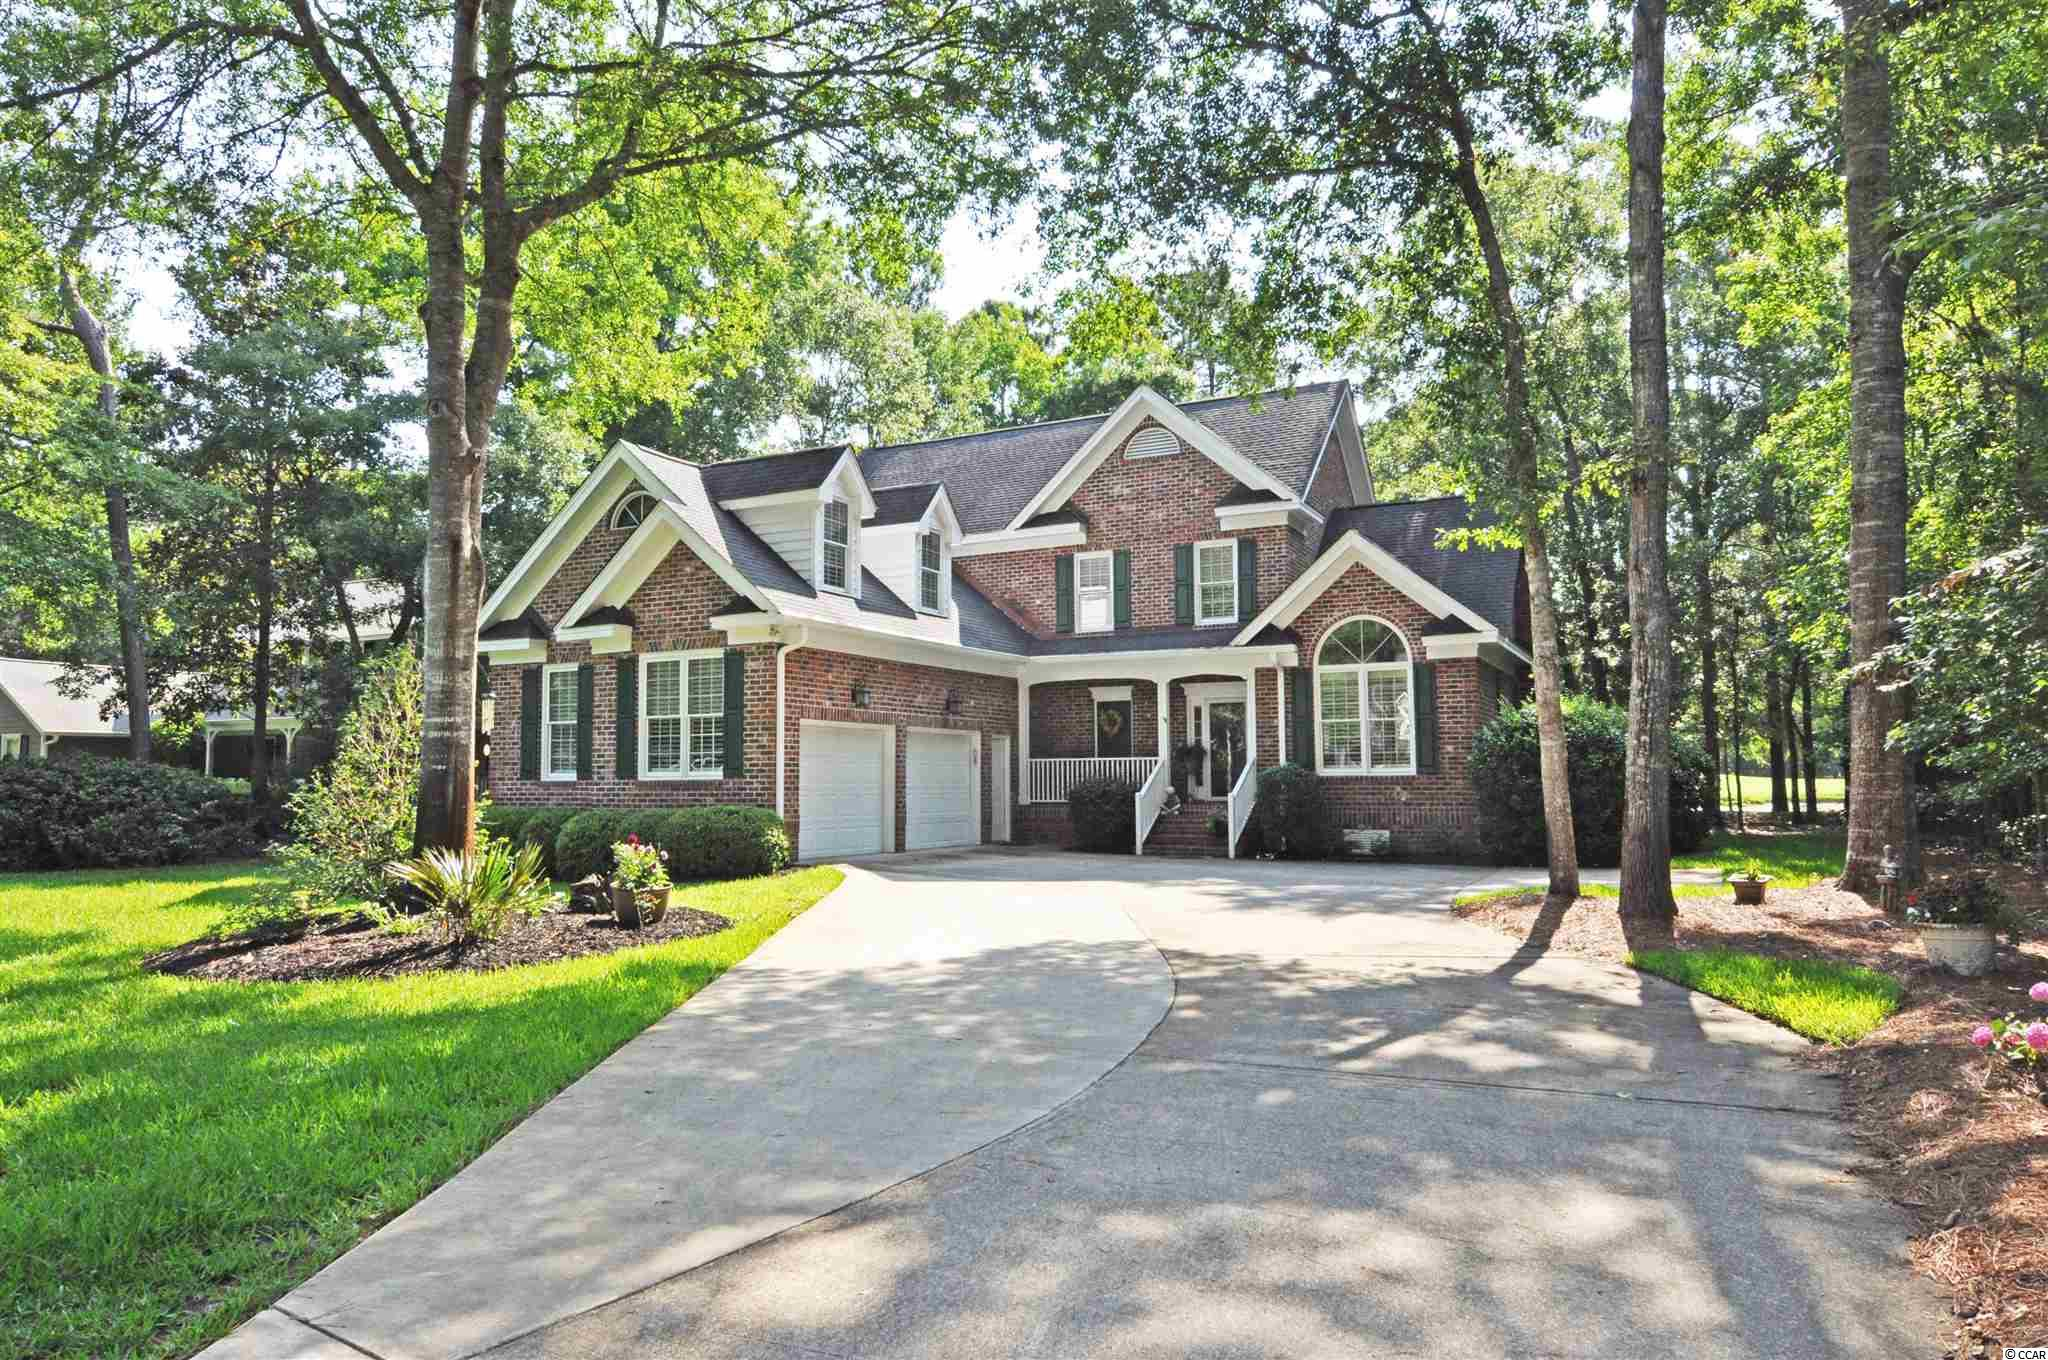 SOLD BEFORE LISTED! This well maintained four bedroom home backs up to the 5th fairway of the Tom Fazio, Private Wachesaw Plantation Golf Course.  With this low country style home being all brick, on a large lot and located at the end of a quiet, cul-de-sac, you can see why this home went pending quickly. Contact the listing agent, or your Realtor, for any further details.